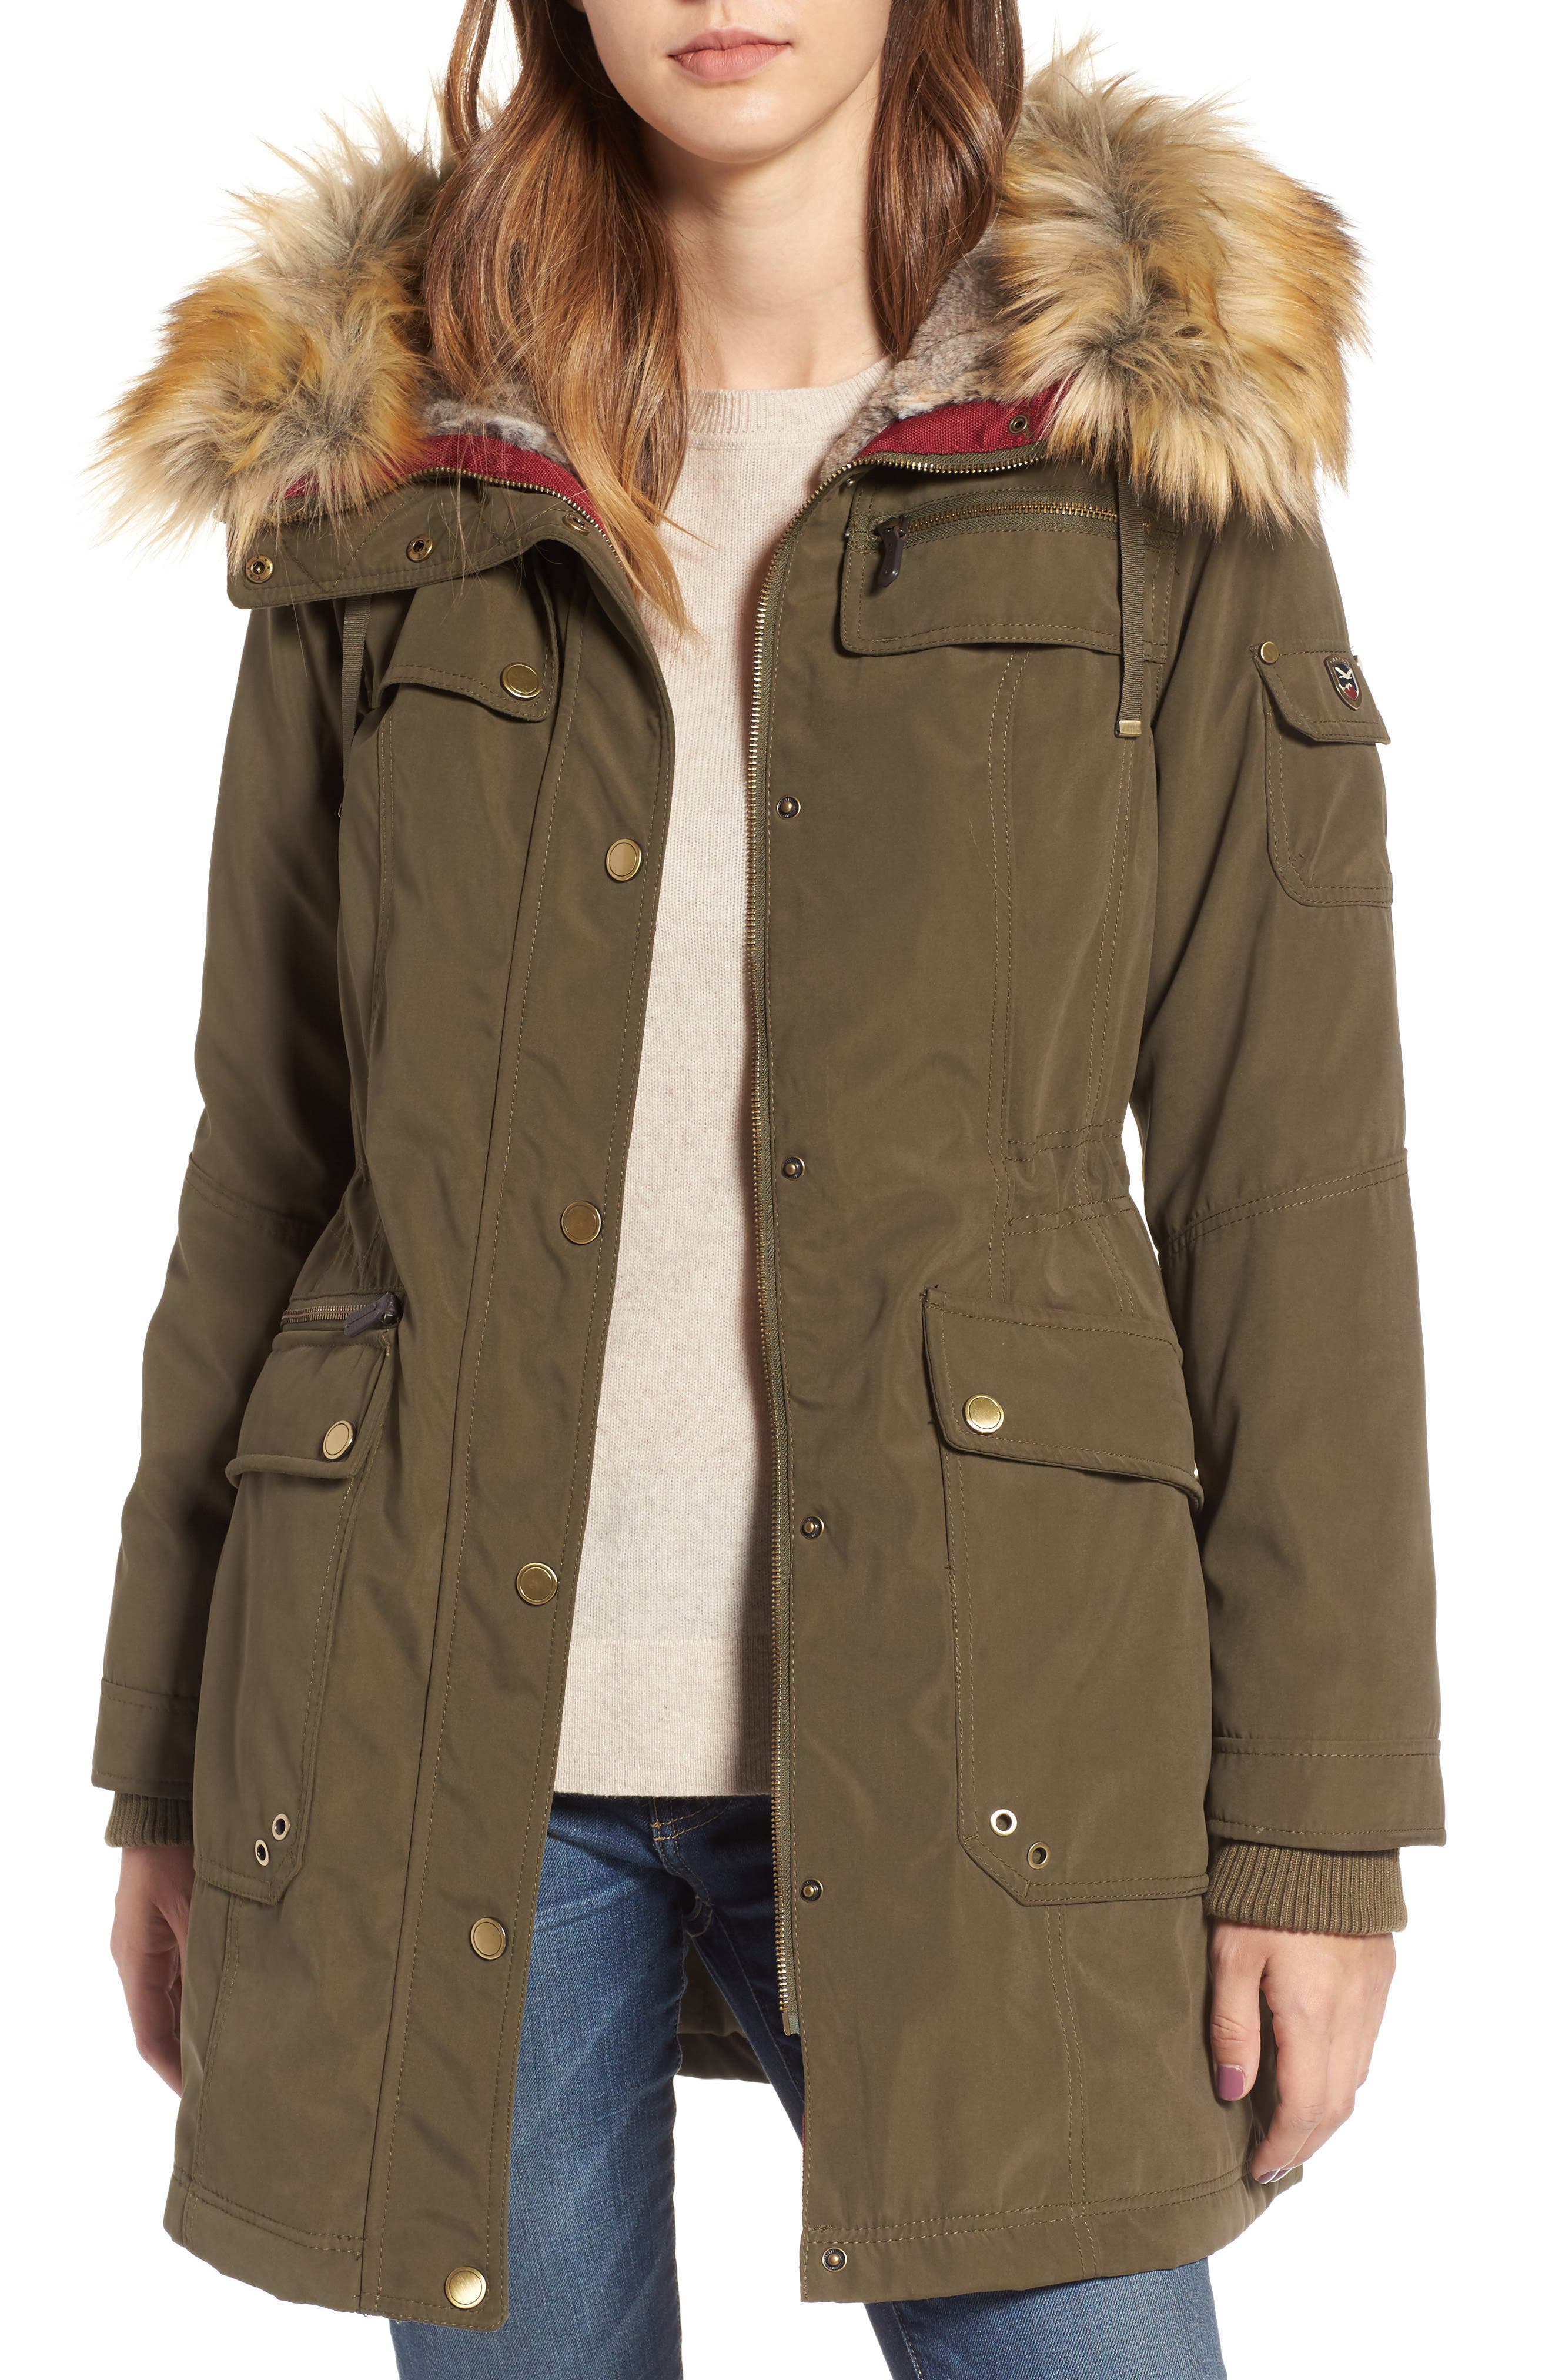 Main Image - 1 Madison Anorak Parka with Faux Fur Trim